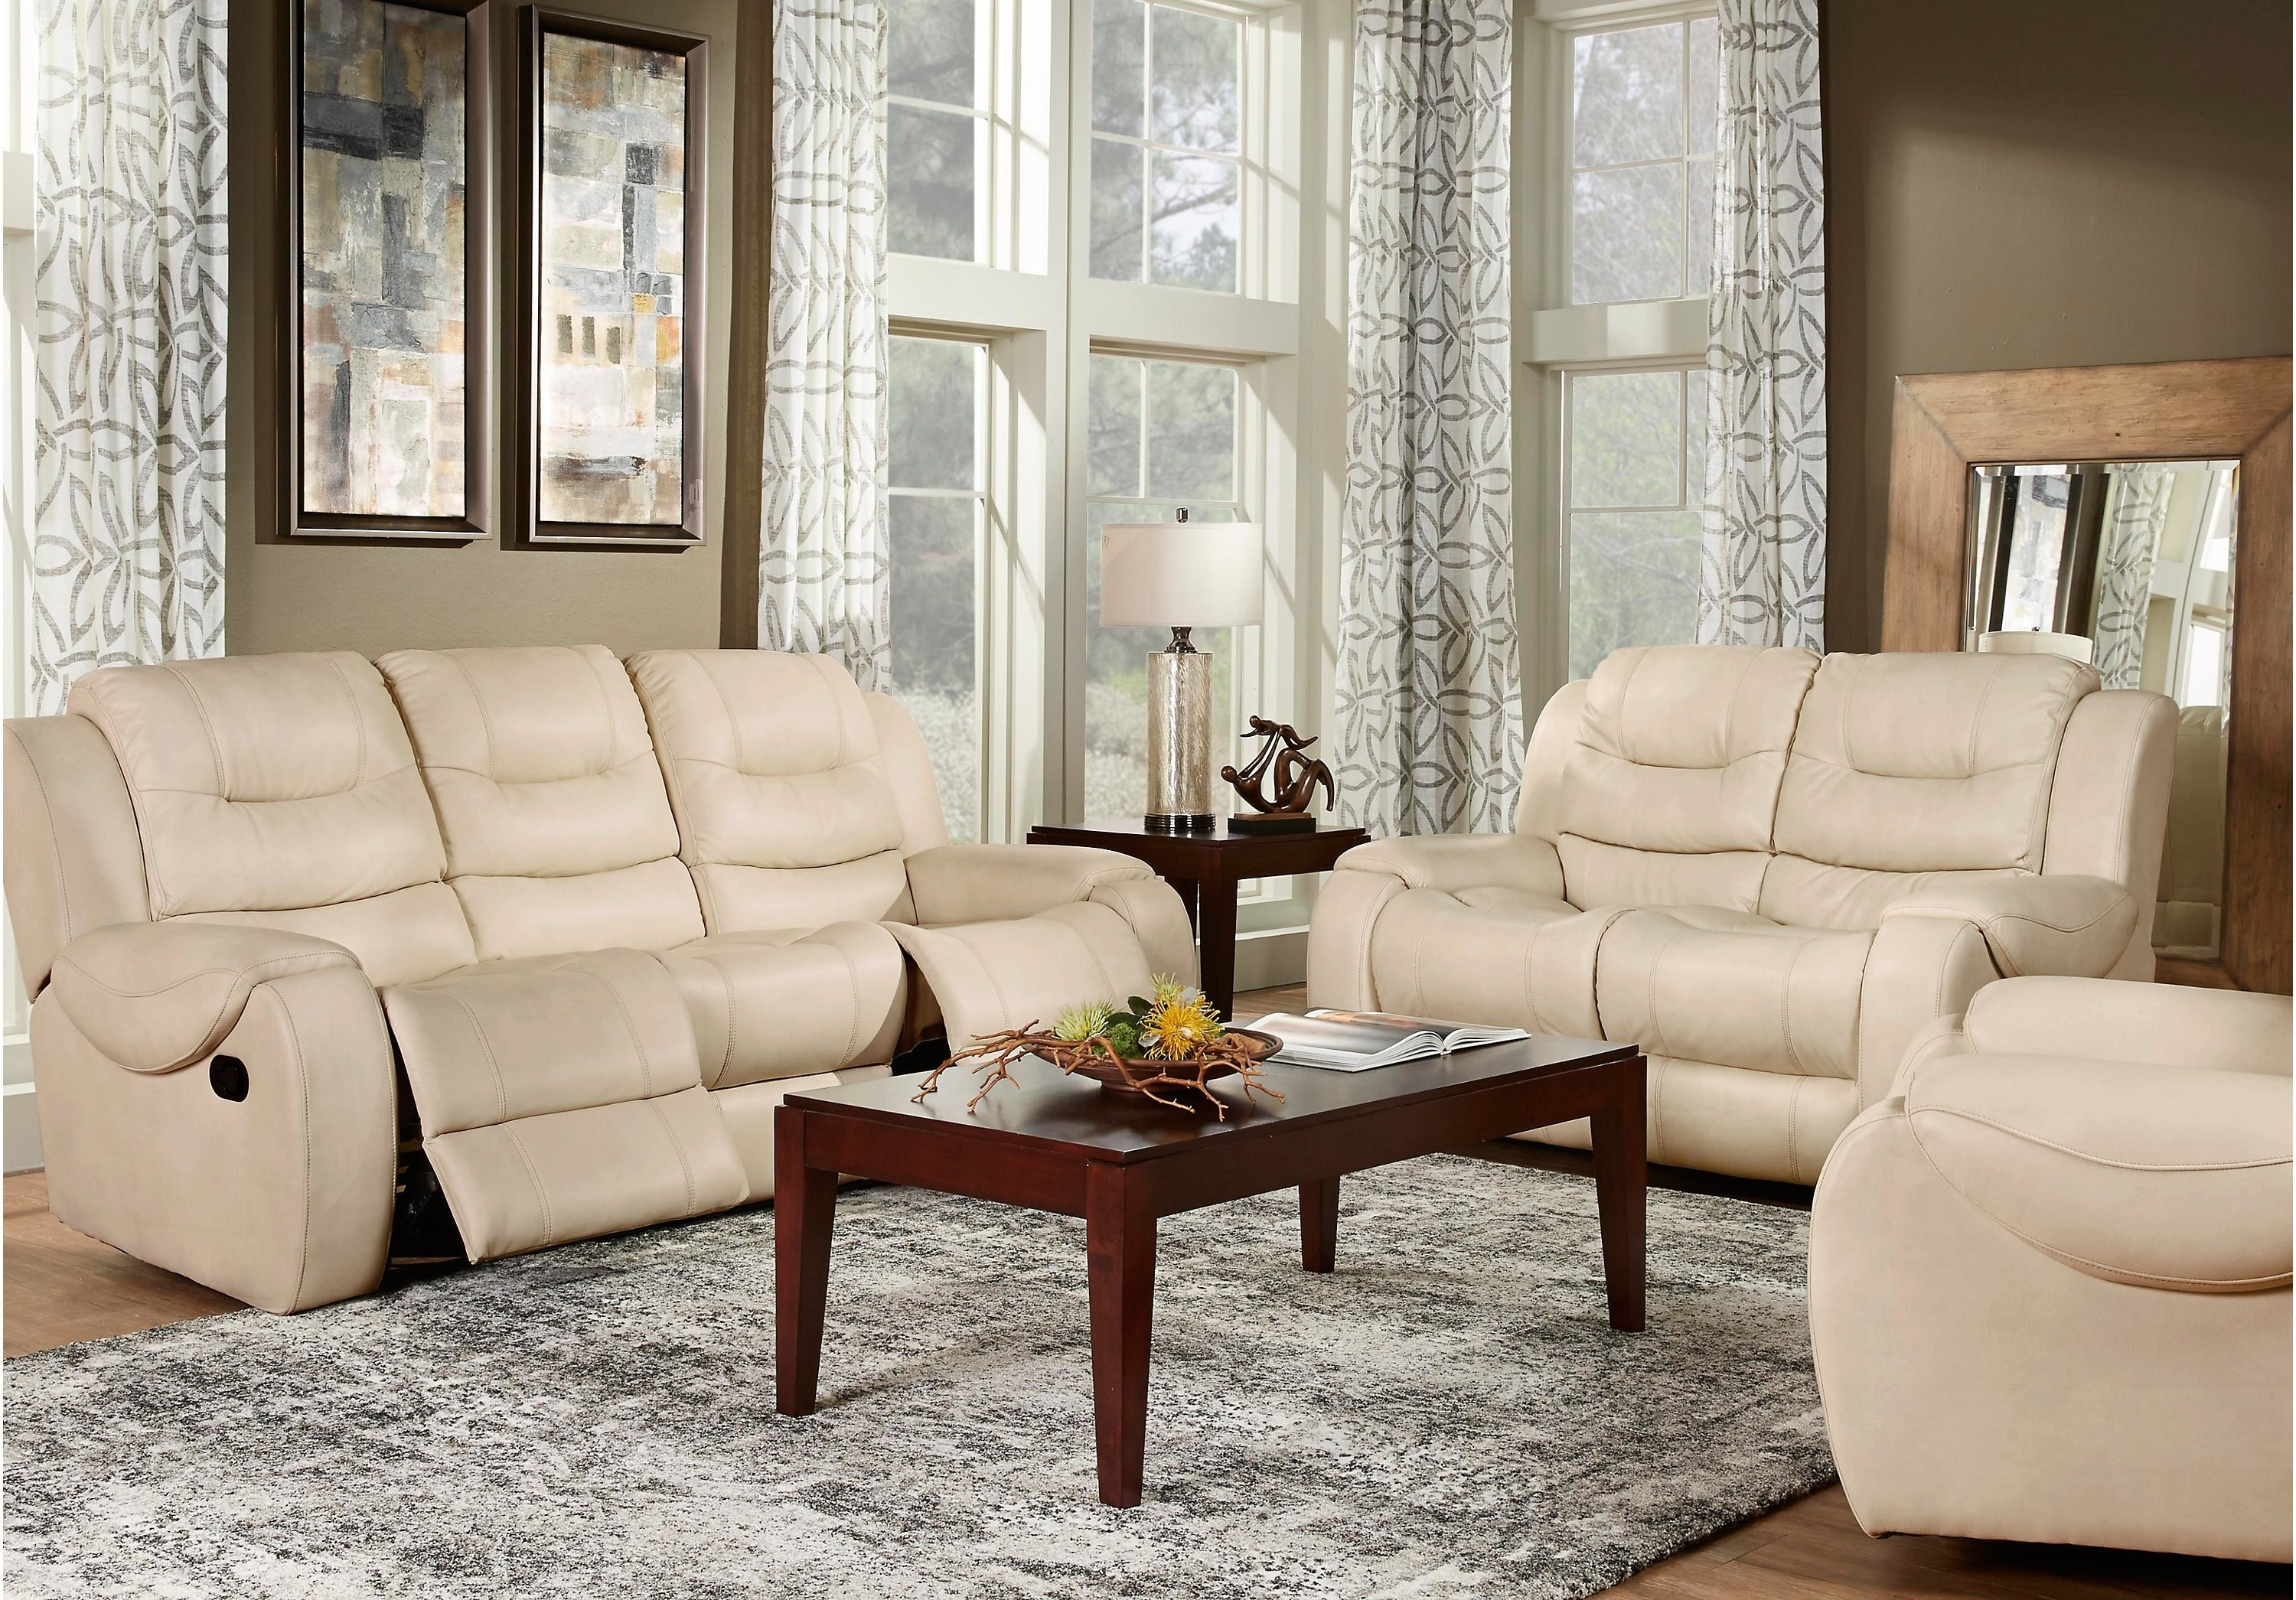 Preferred Edmonton Leather Sectional Leons Sofas Sectional Sofas Edmonton Throughout Sacramento Sectional Sofas (View 18 of 20)